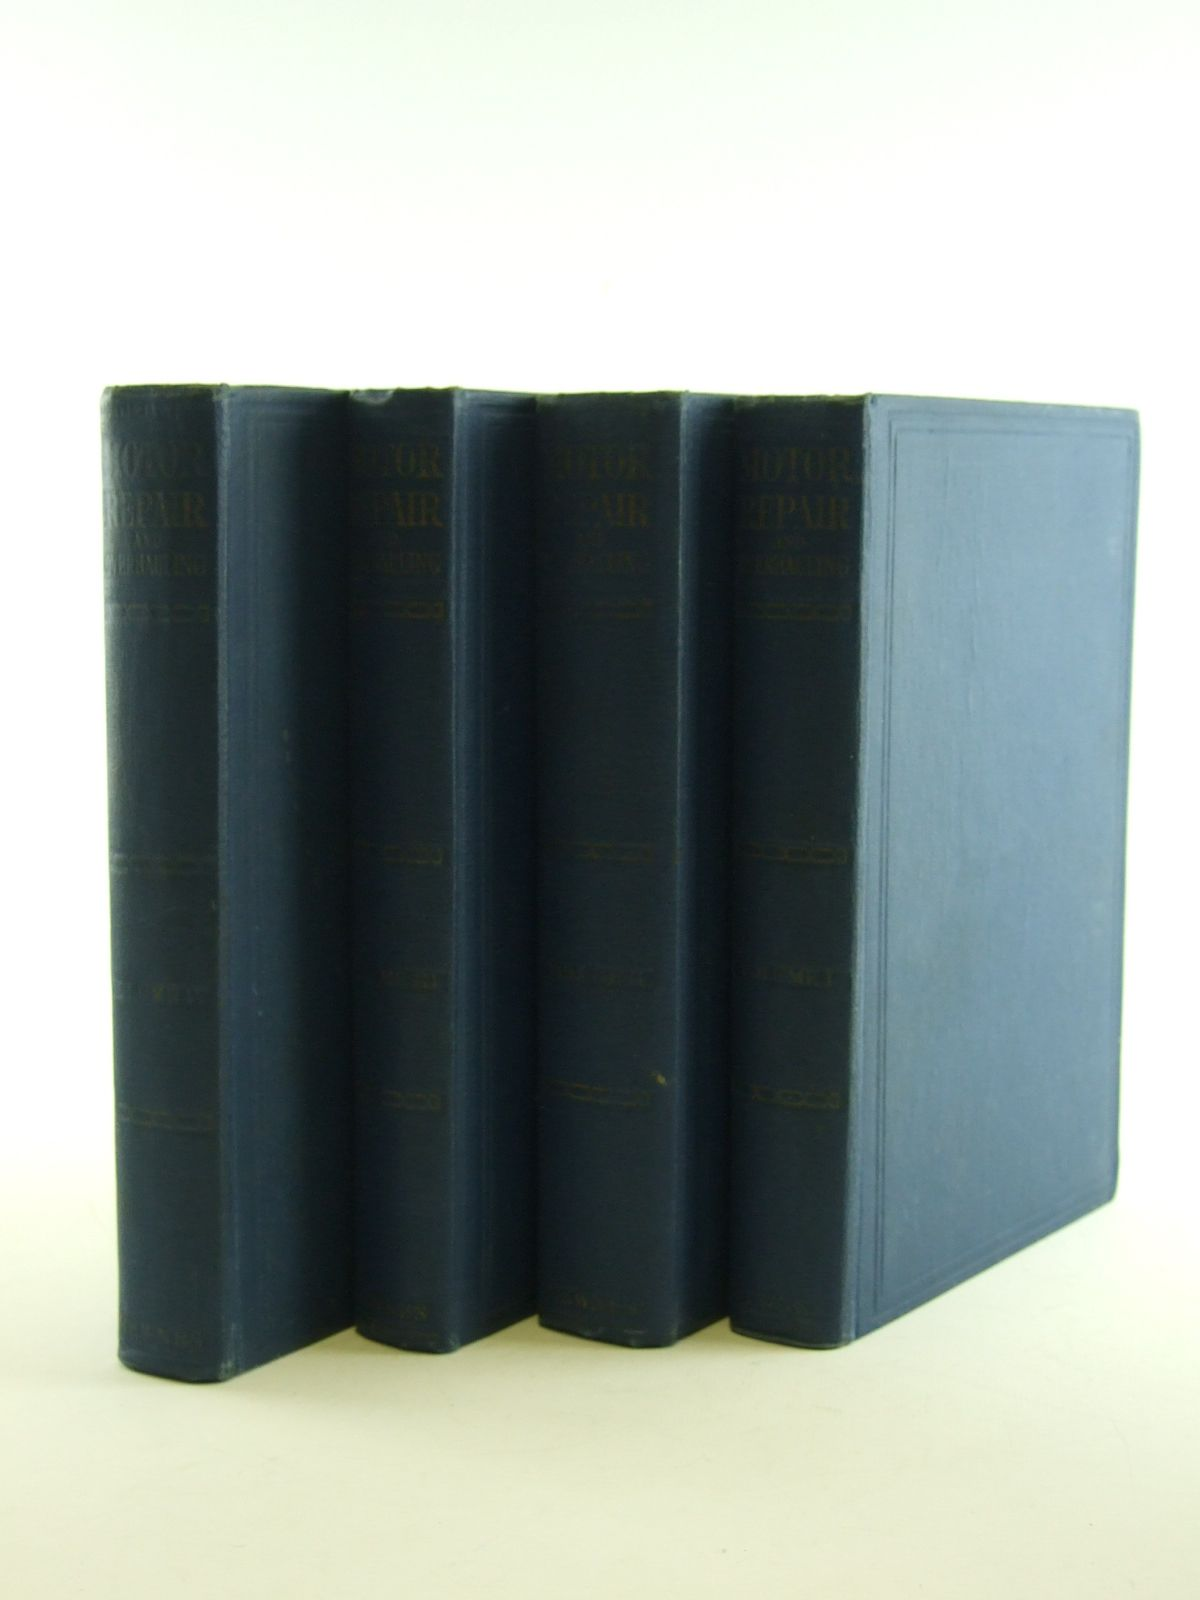 Photo of MOTOR REPAIR AND OVERHAULING 4 VOLUMES written by Molloy, E. published by George Newnes Ltd. (STOCK CODE: 1602745)  for sale by Stella & Rose's Books